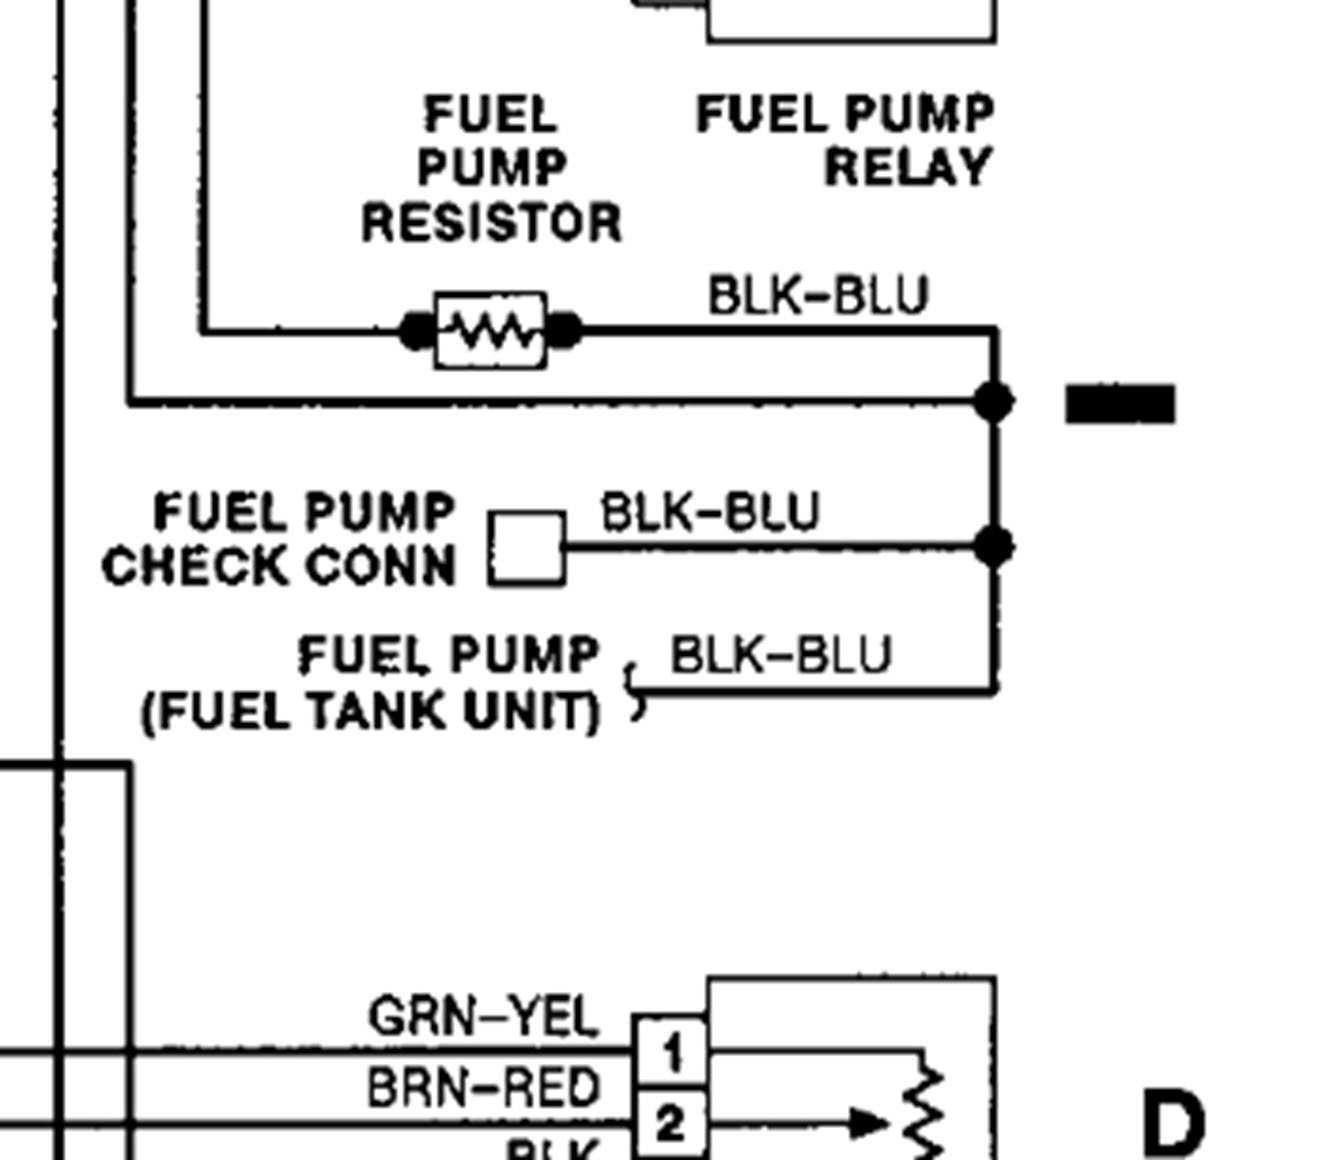 Ford Electrical Wiring Diagrams 2001 Mountaineer in addition 1986 Ford Bronco Ii Engine together with Ford Contour Fuse Diagram together with 95 Chevy 6 5 Sel Wiring Diagram also 1992 Dodge Sel Wiring Diagram. on p 0996b43f802c54bb